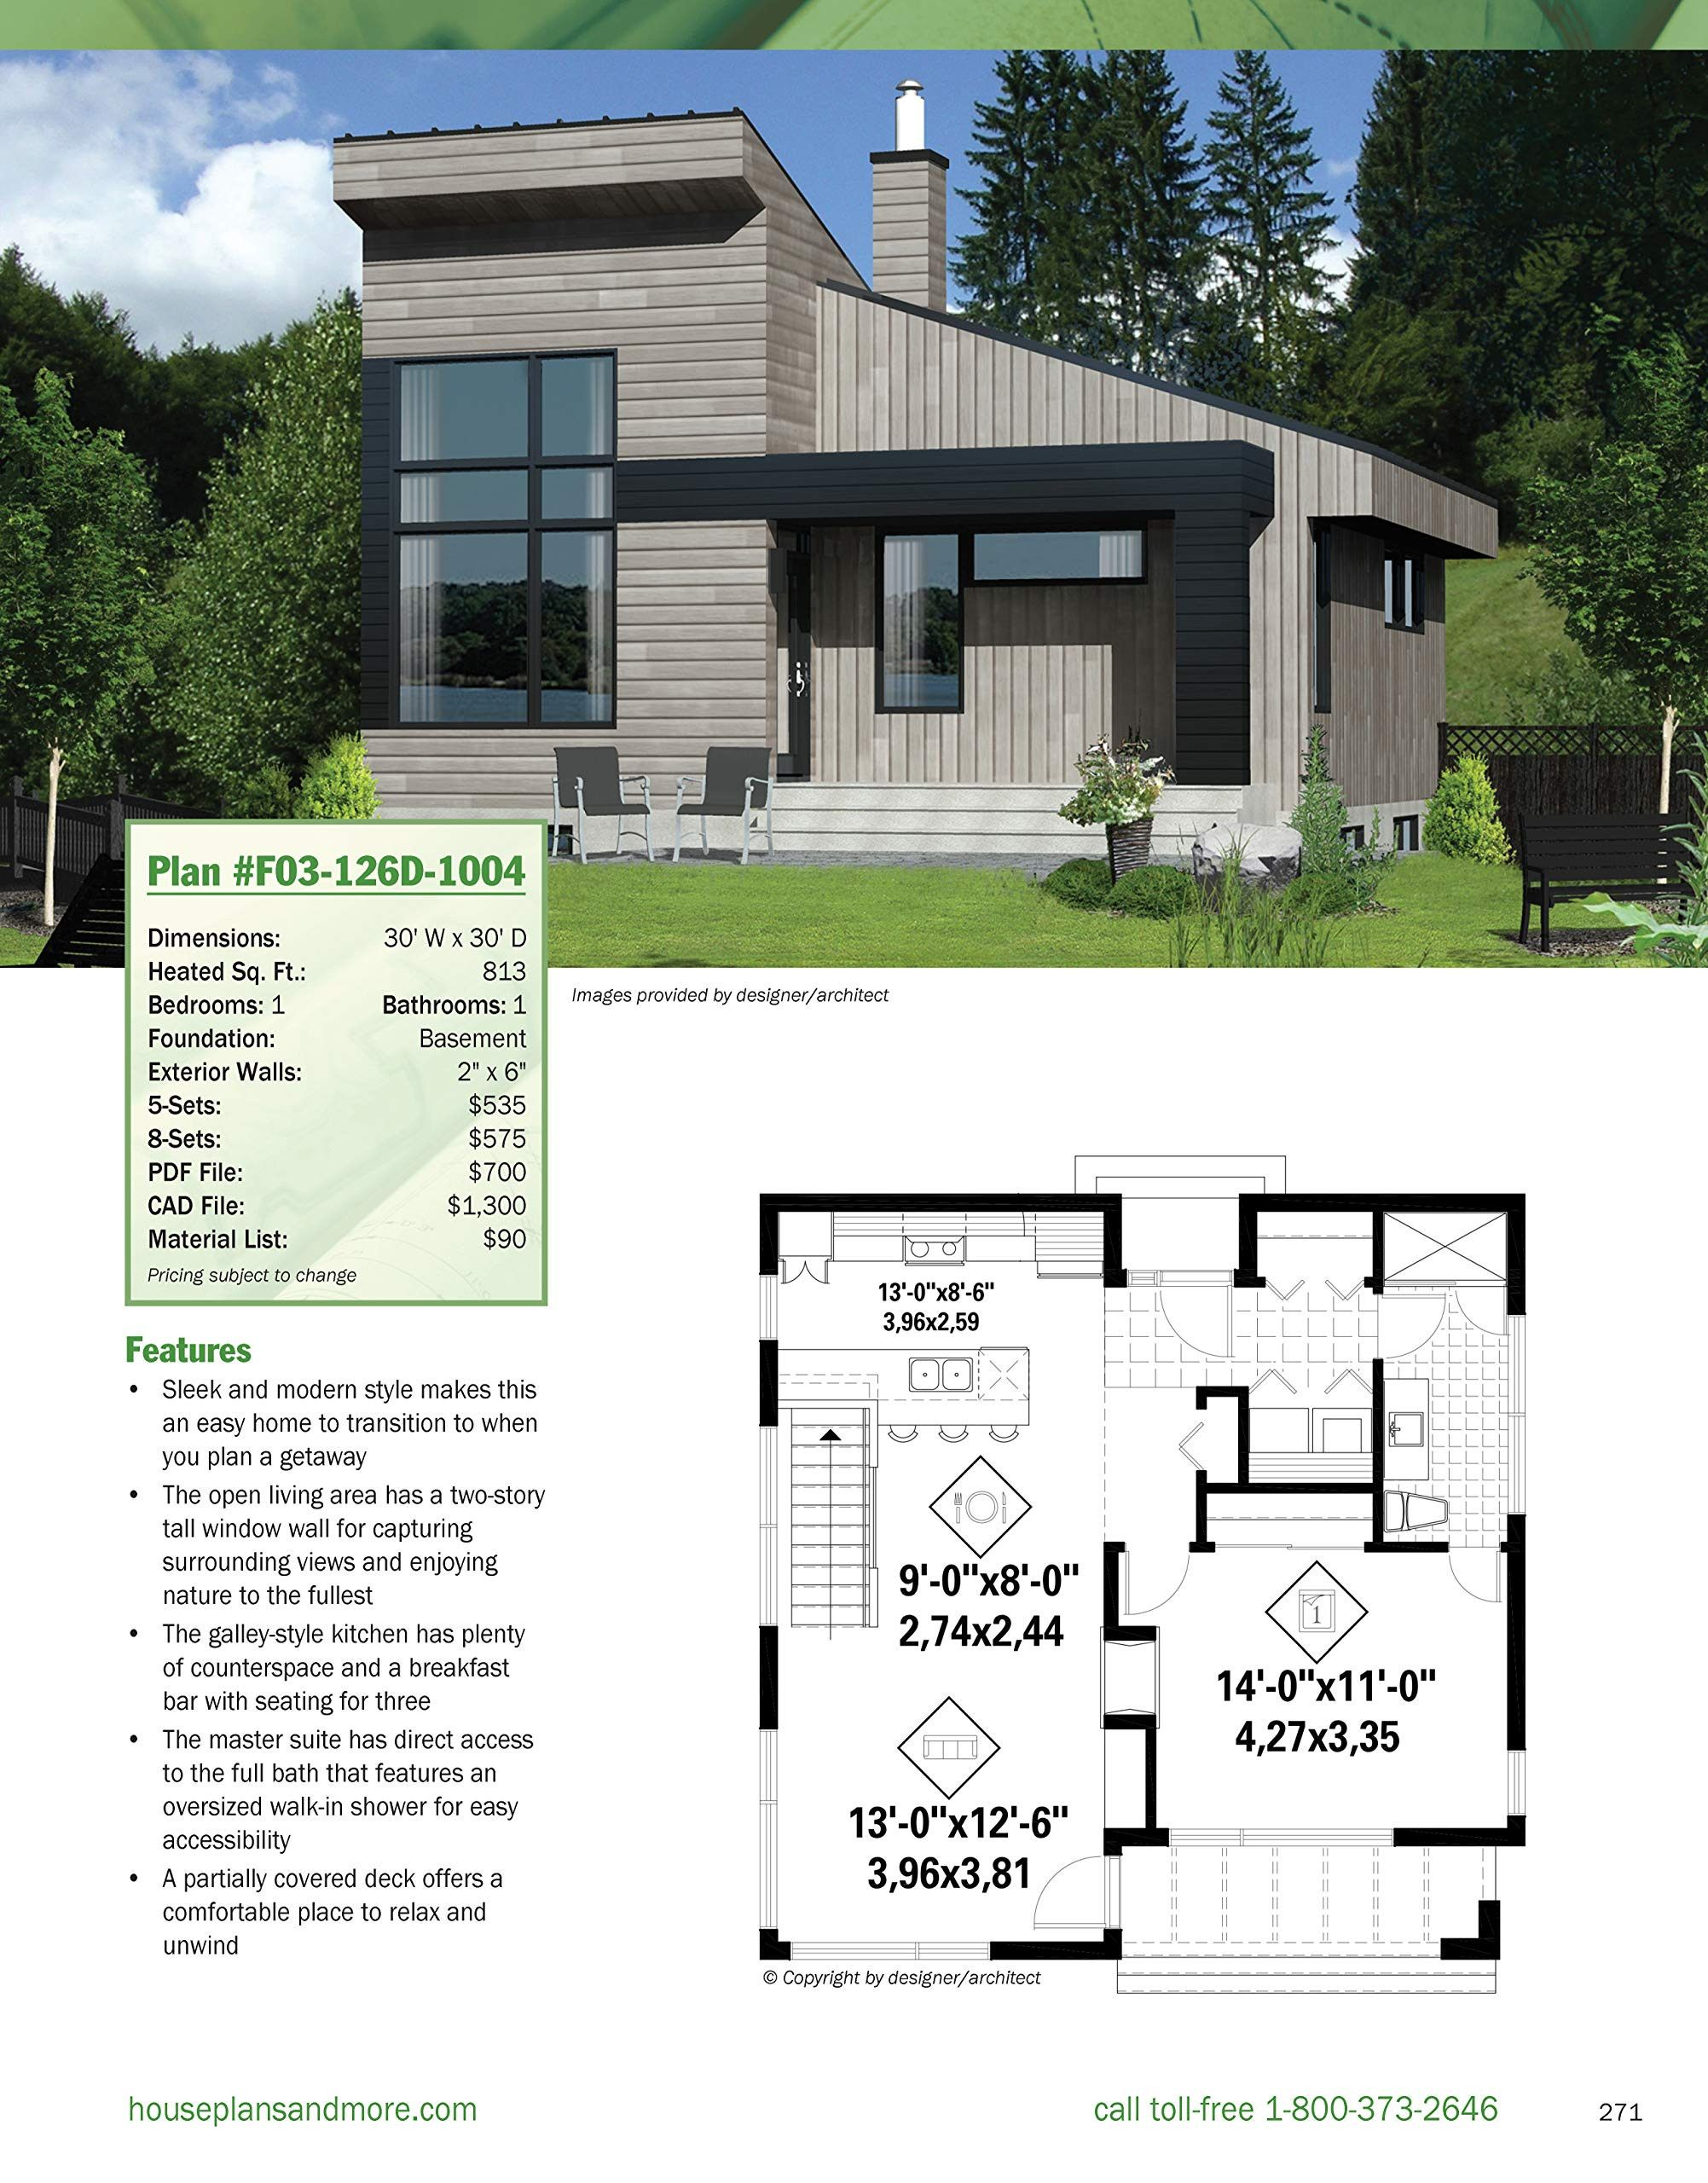 Contemporary House Plans Under 1000 Sq Ft 2020 Contemporary House Plans Small House Design Cottage Style House Plans